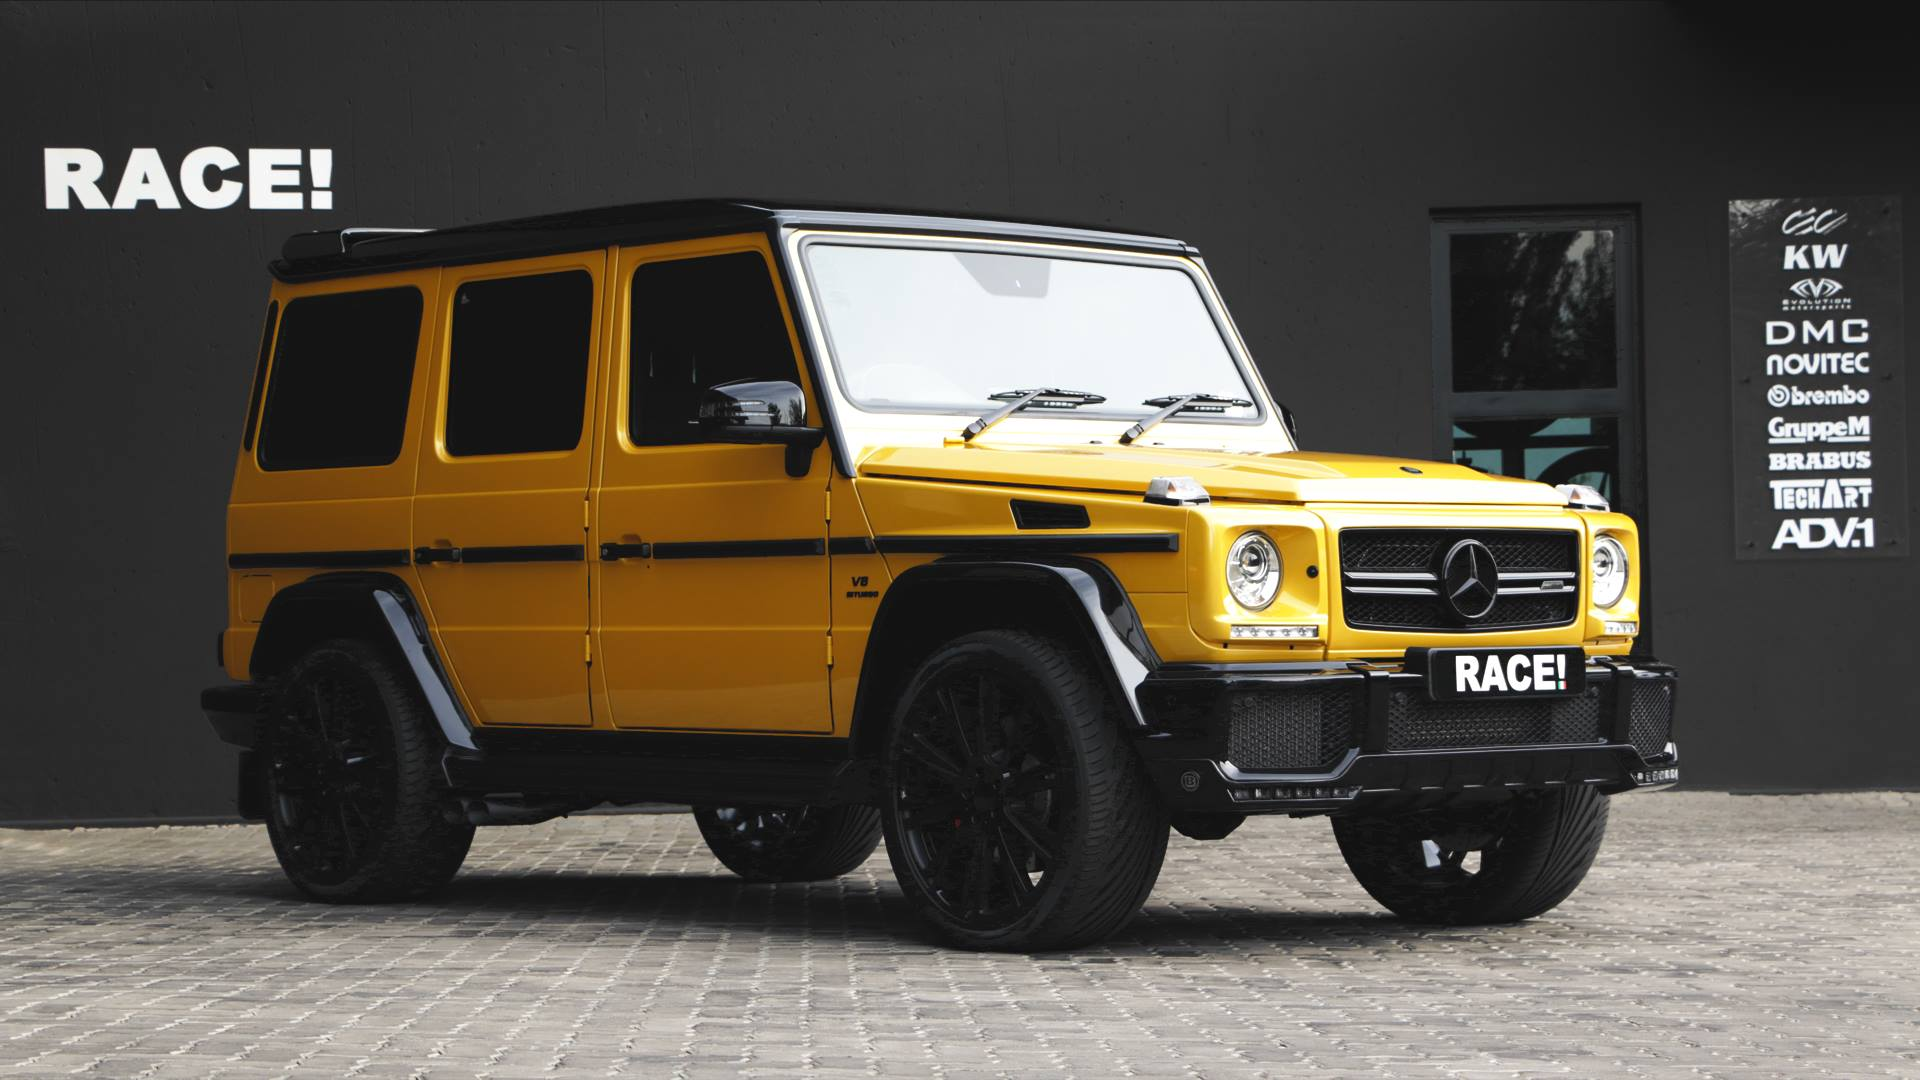 Gt Race Car Wallpaper Crazy Color Yellow G63 Amg With Brabus Parts By Race